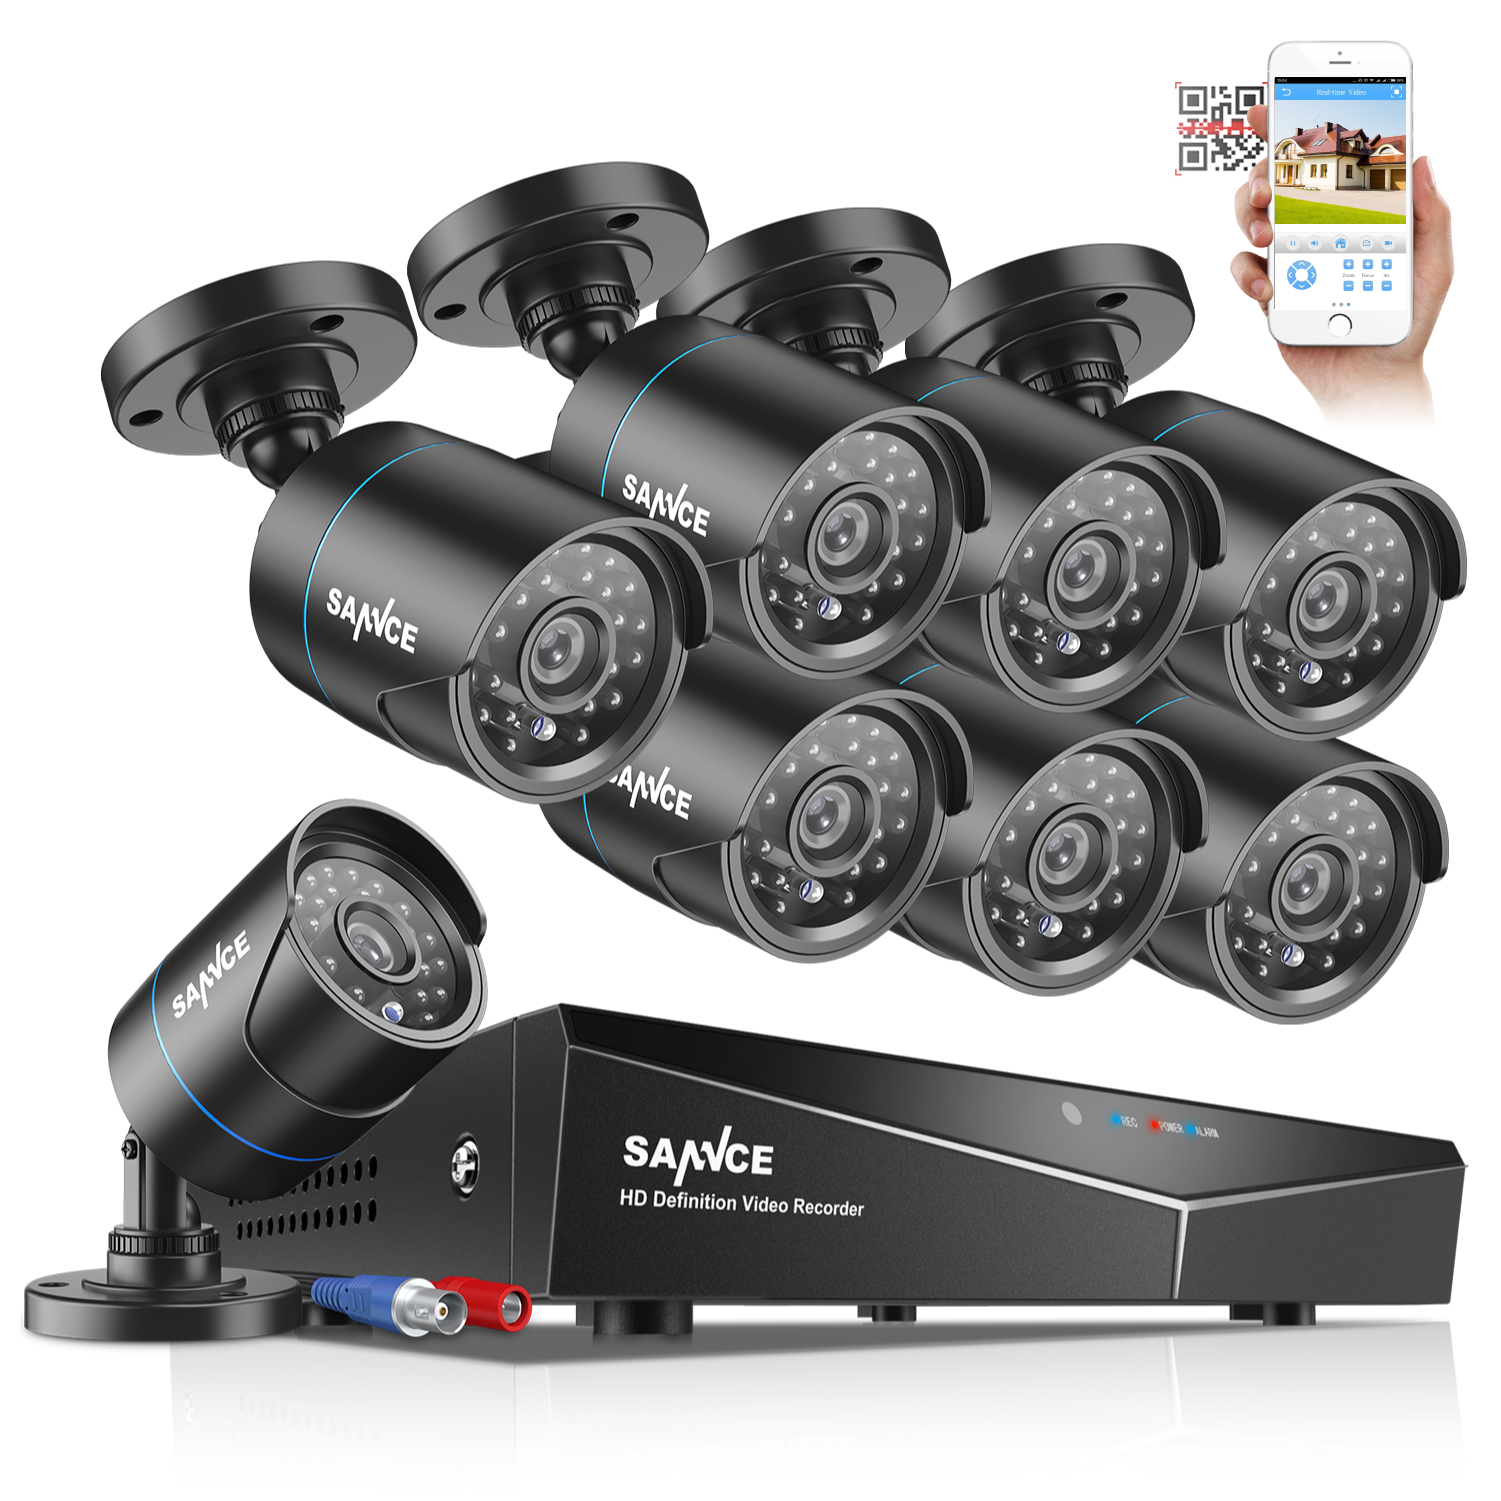 SANNCE HD 1080P HDMI 8CH DVR 720p Outdoor CCTV Home Security Camera System 1TB